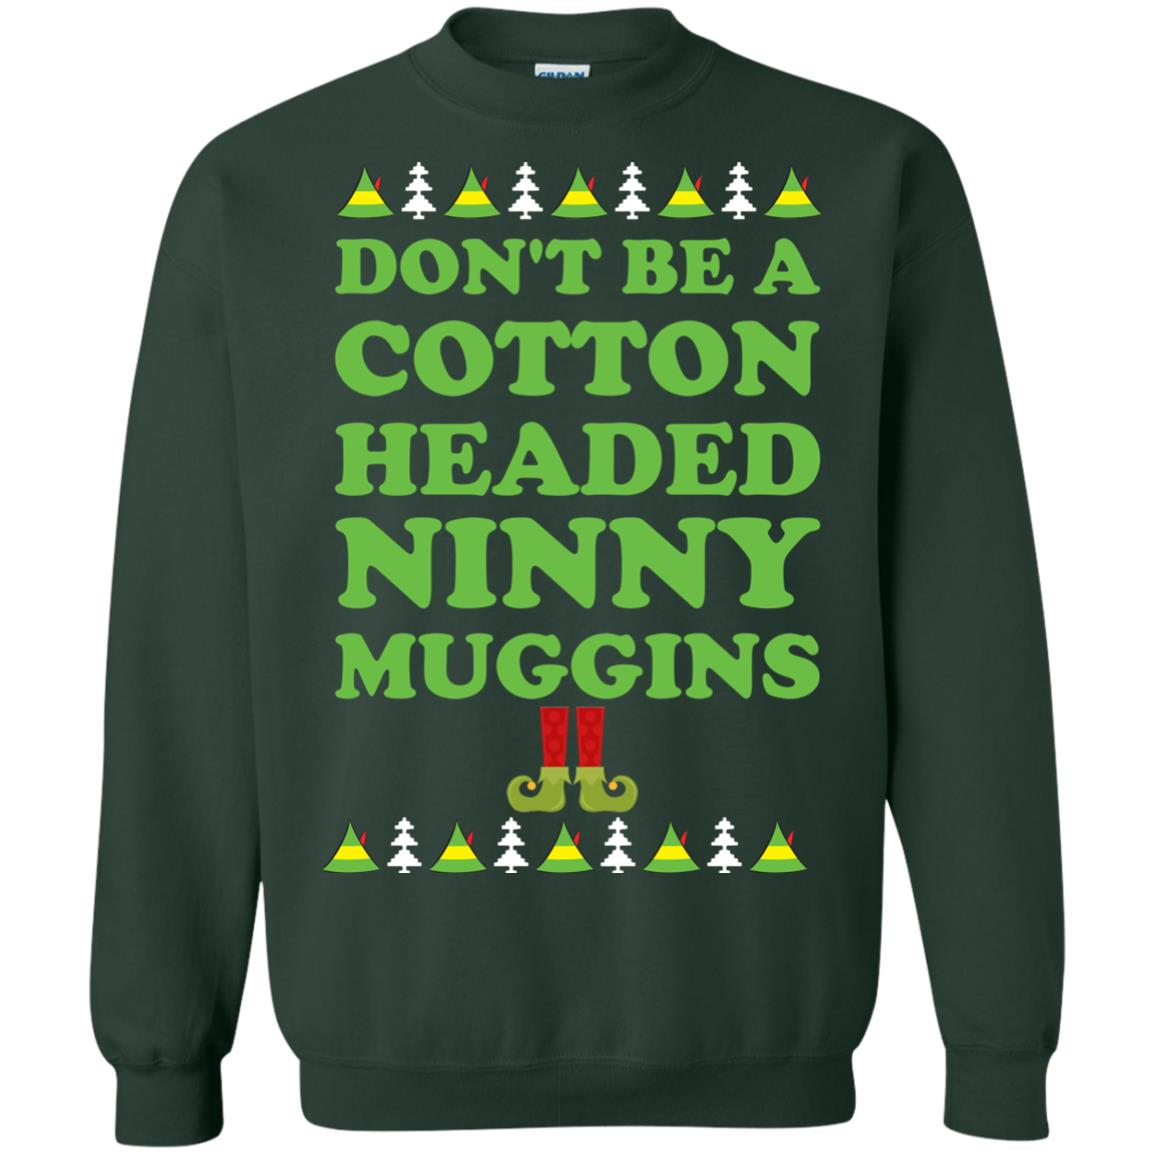 image 2802 - Elf Don't Be a Cotton Headed Ninny Muggins Christmas Sweater, Hoodie